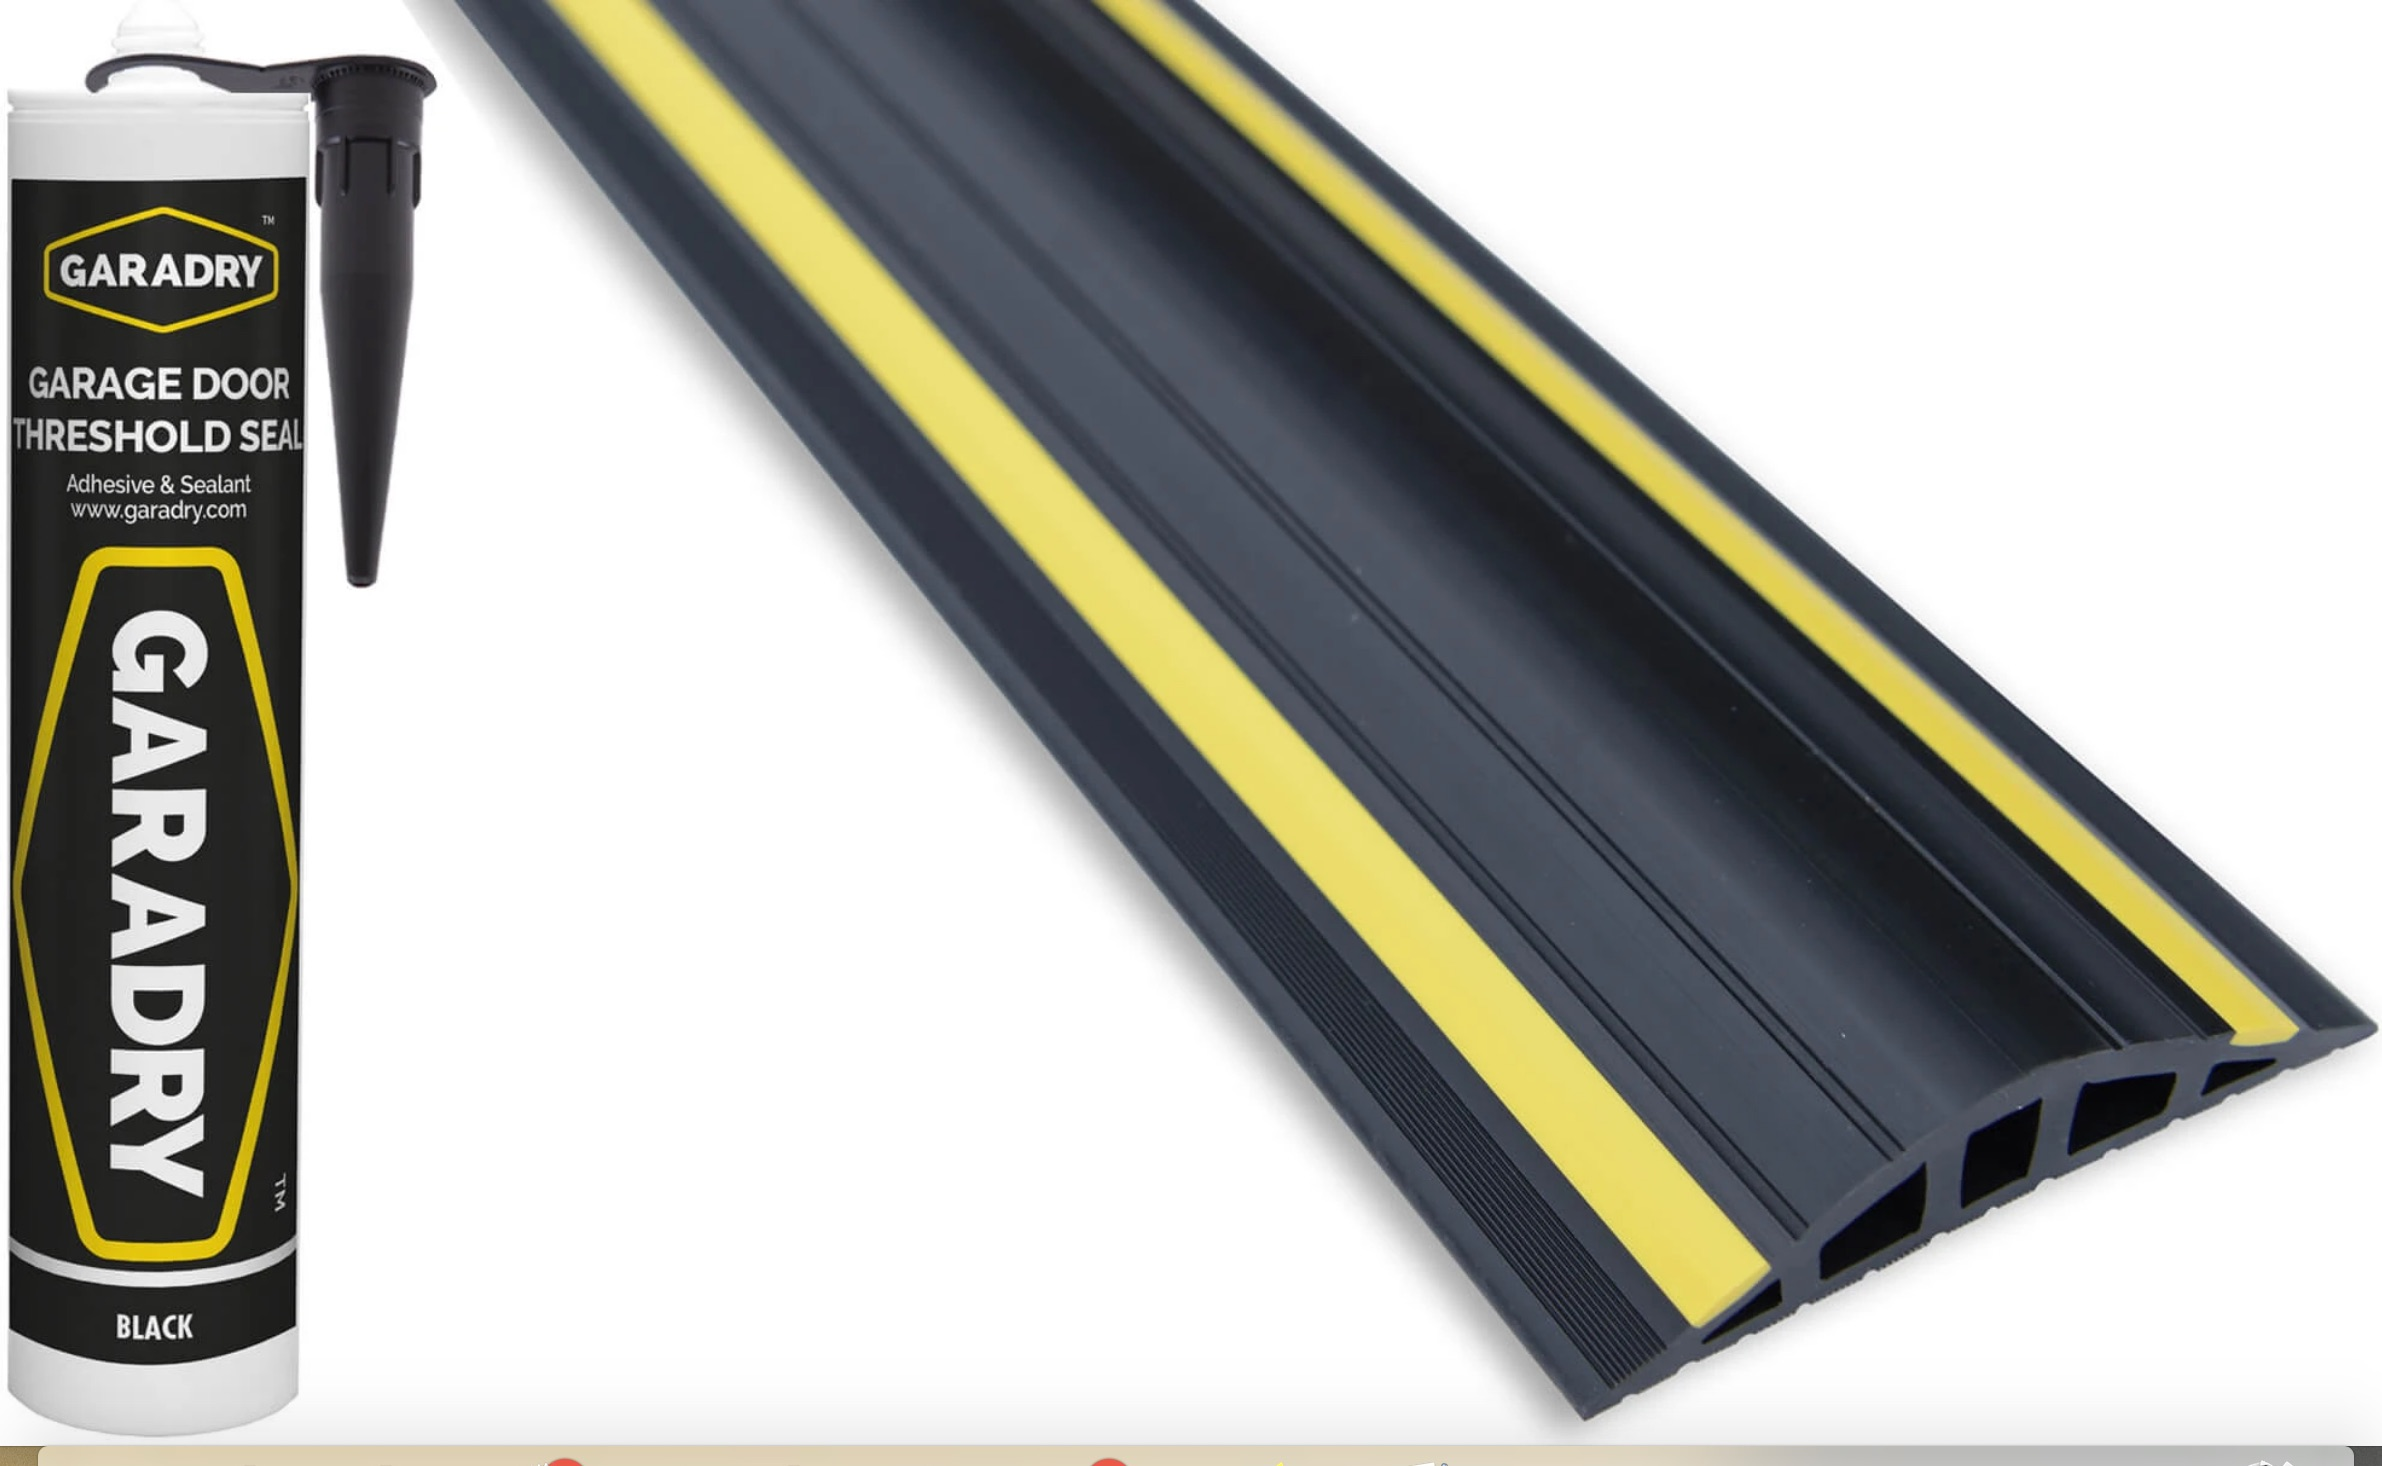 25mm High x 3.12m - 10 foot 3 Long & 1 x adhesive